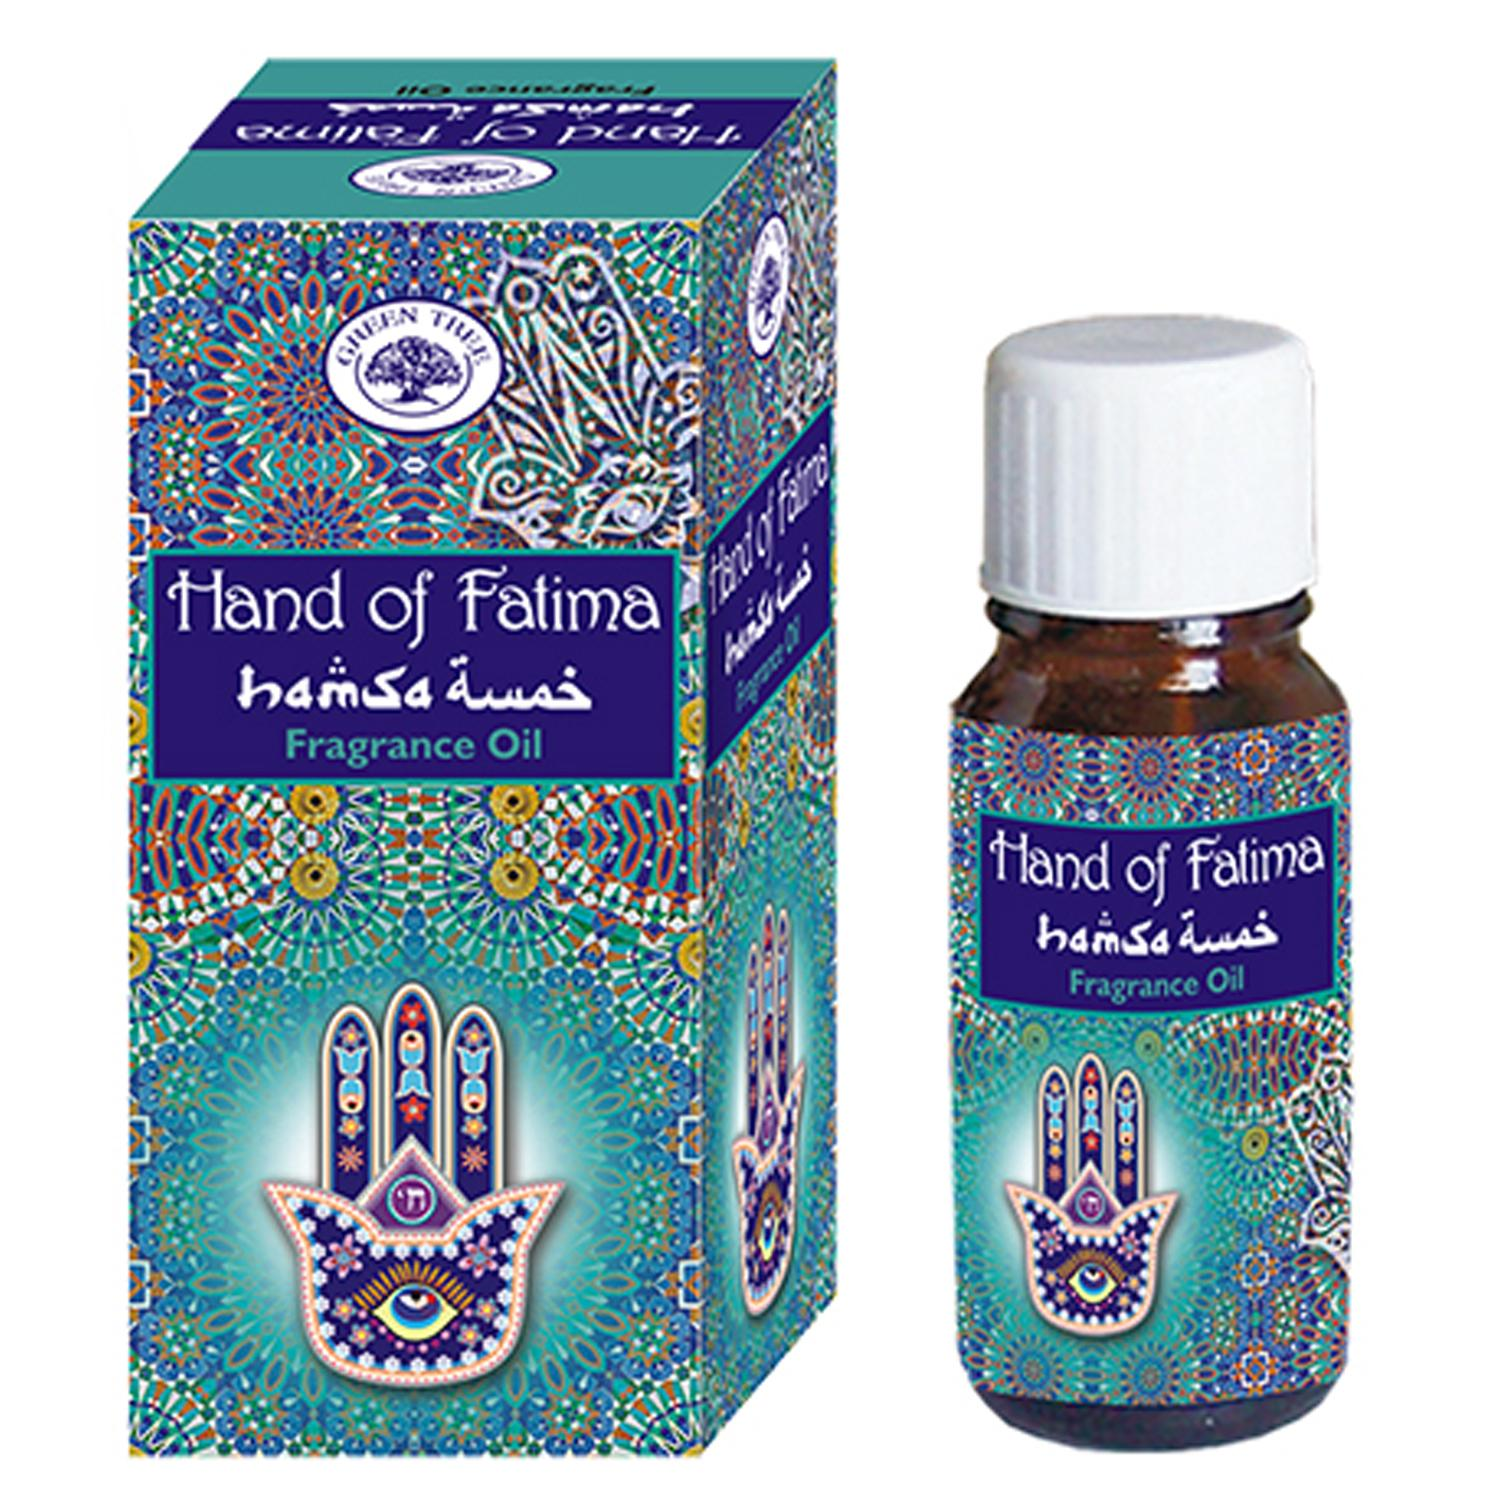 Green Tree Fragrance Oil - HAND of FATIMA